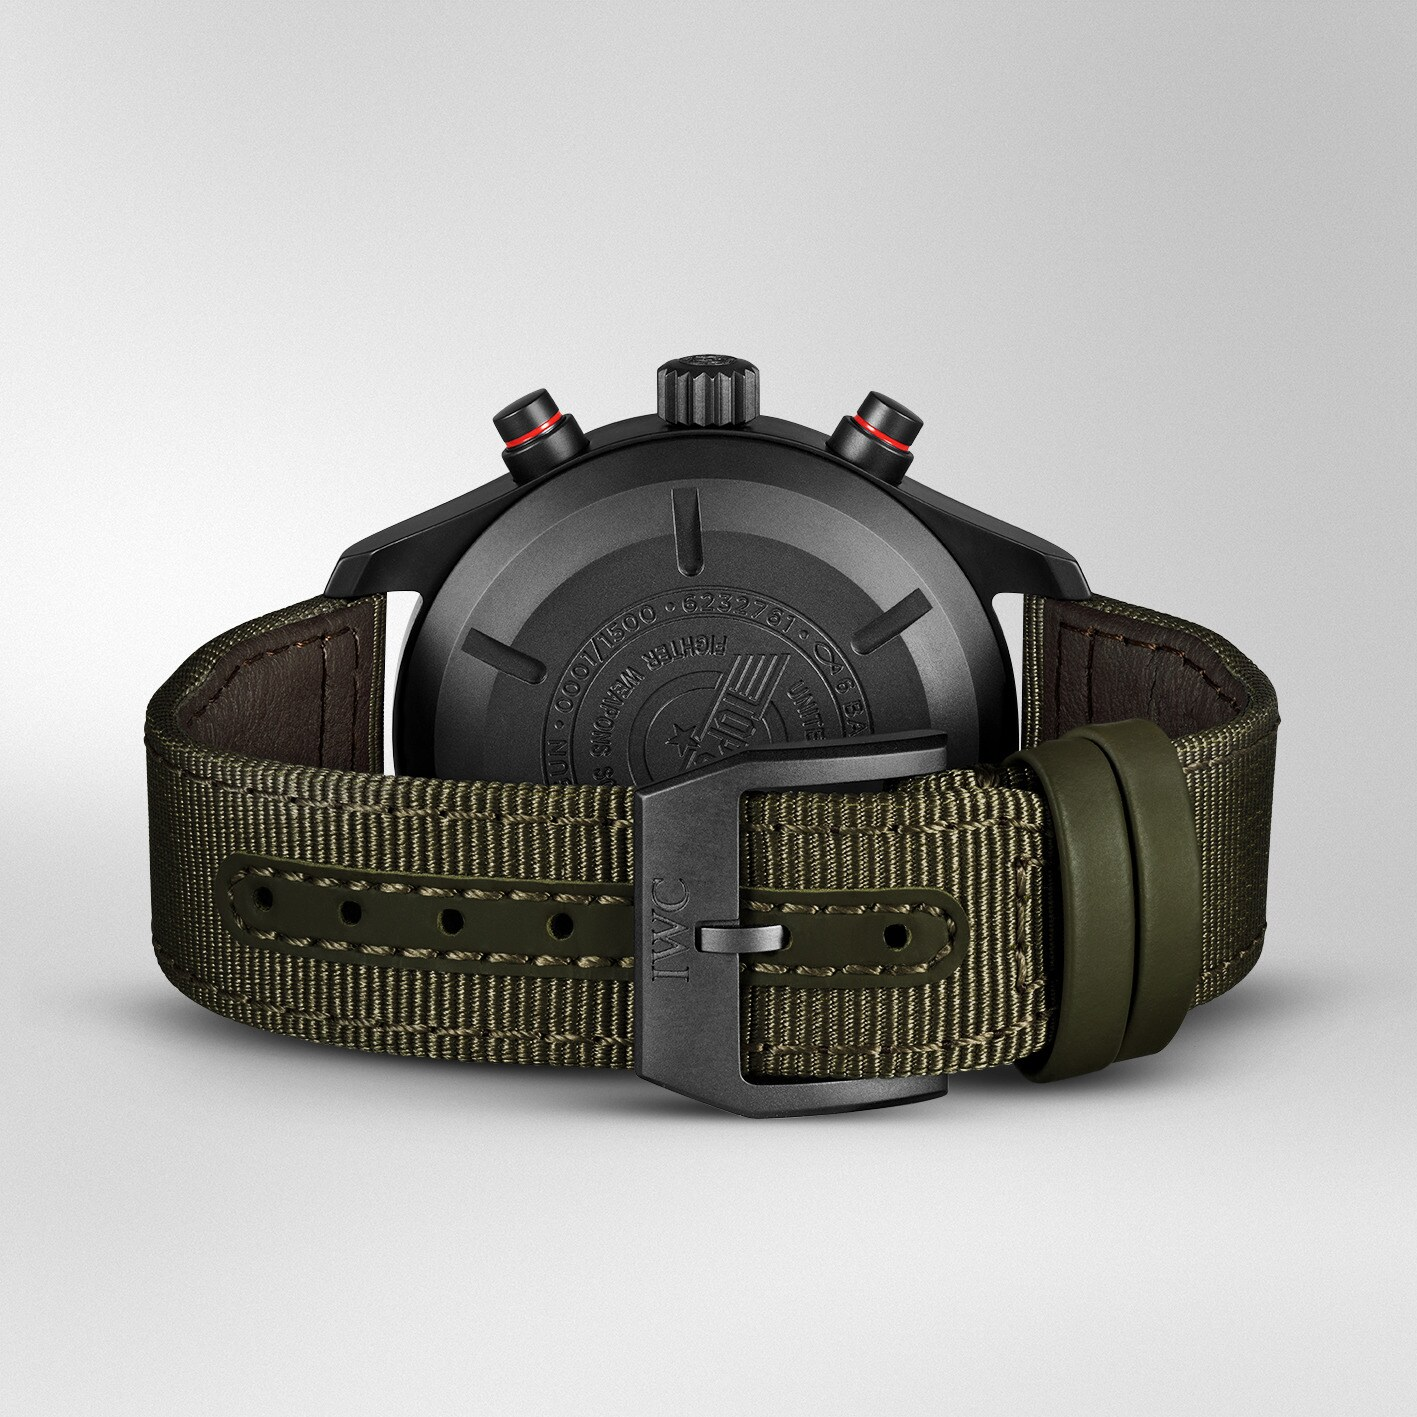 Iwc Pilot Watch Chronograph Top Gun Edition SFTI IW389104 trasera y correa